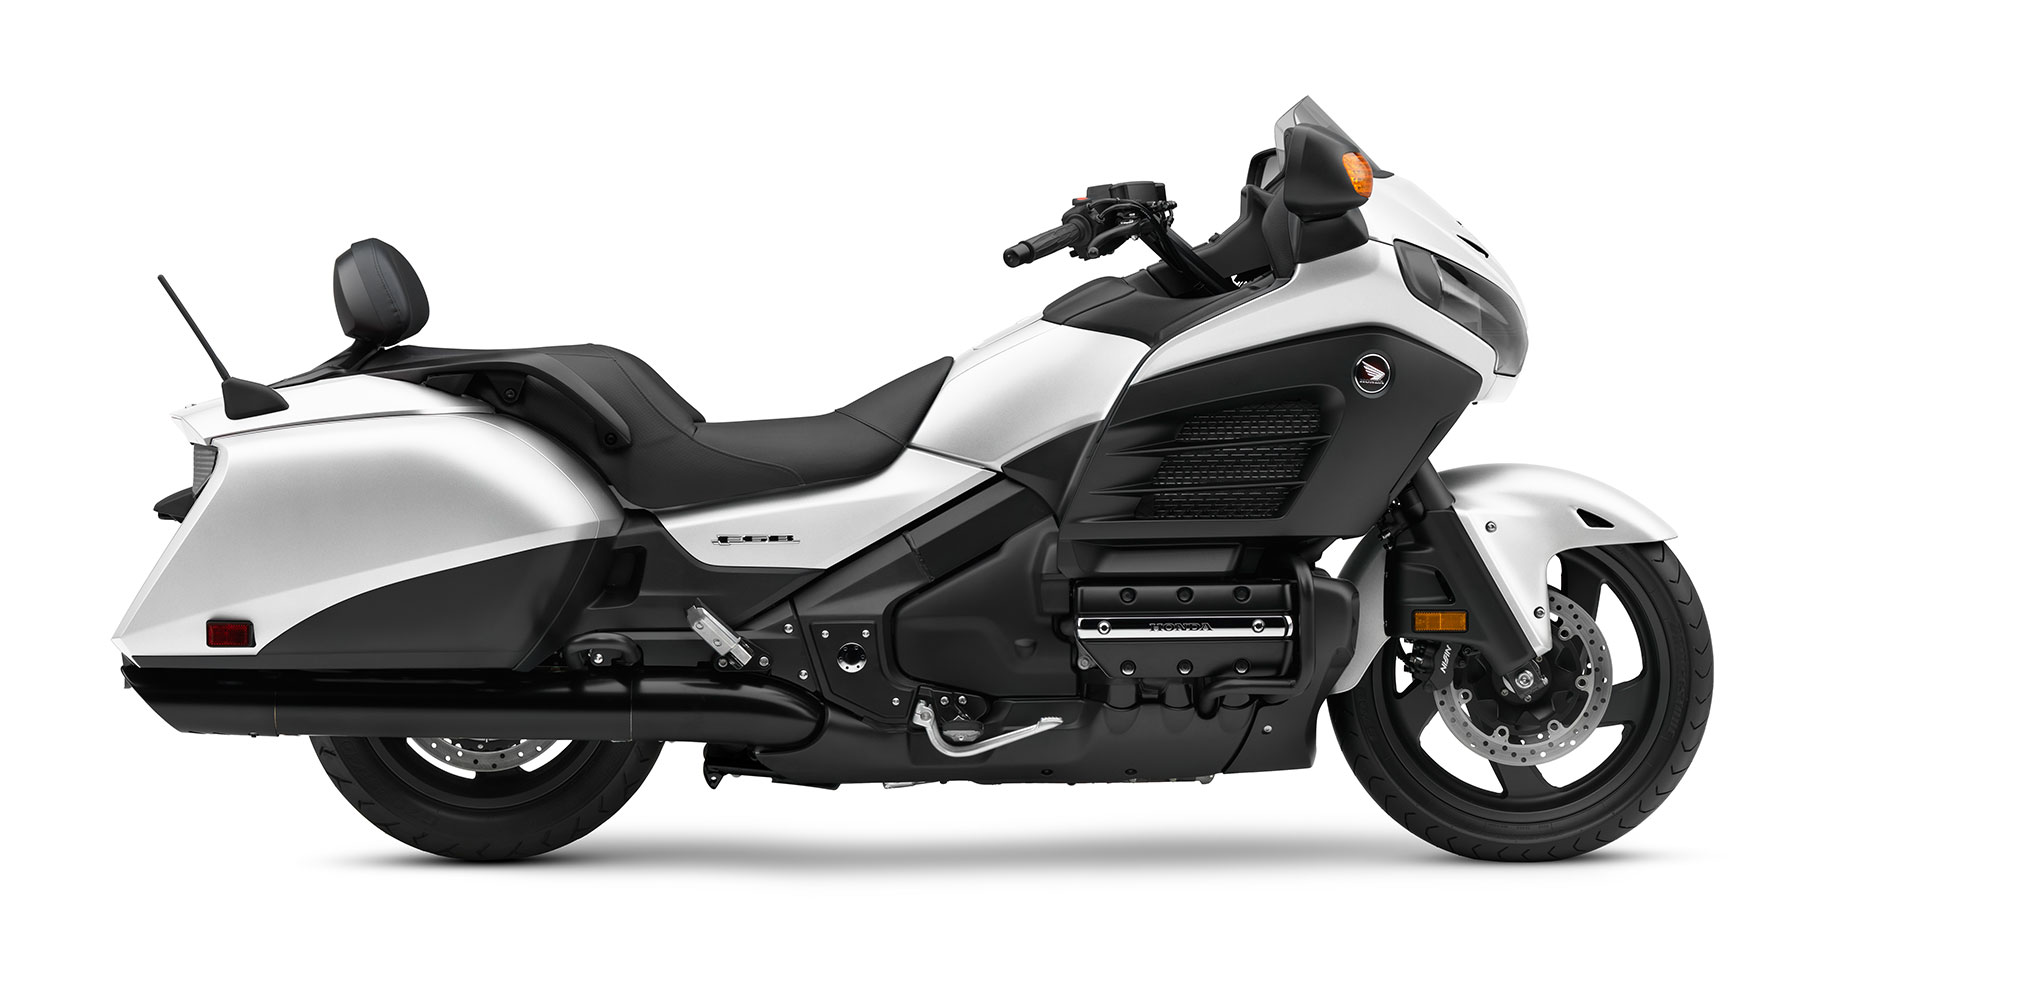 2017 honda gold wing f6b deluxe review. Black Bedroom Furniture Sets. Home Design Ideas